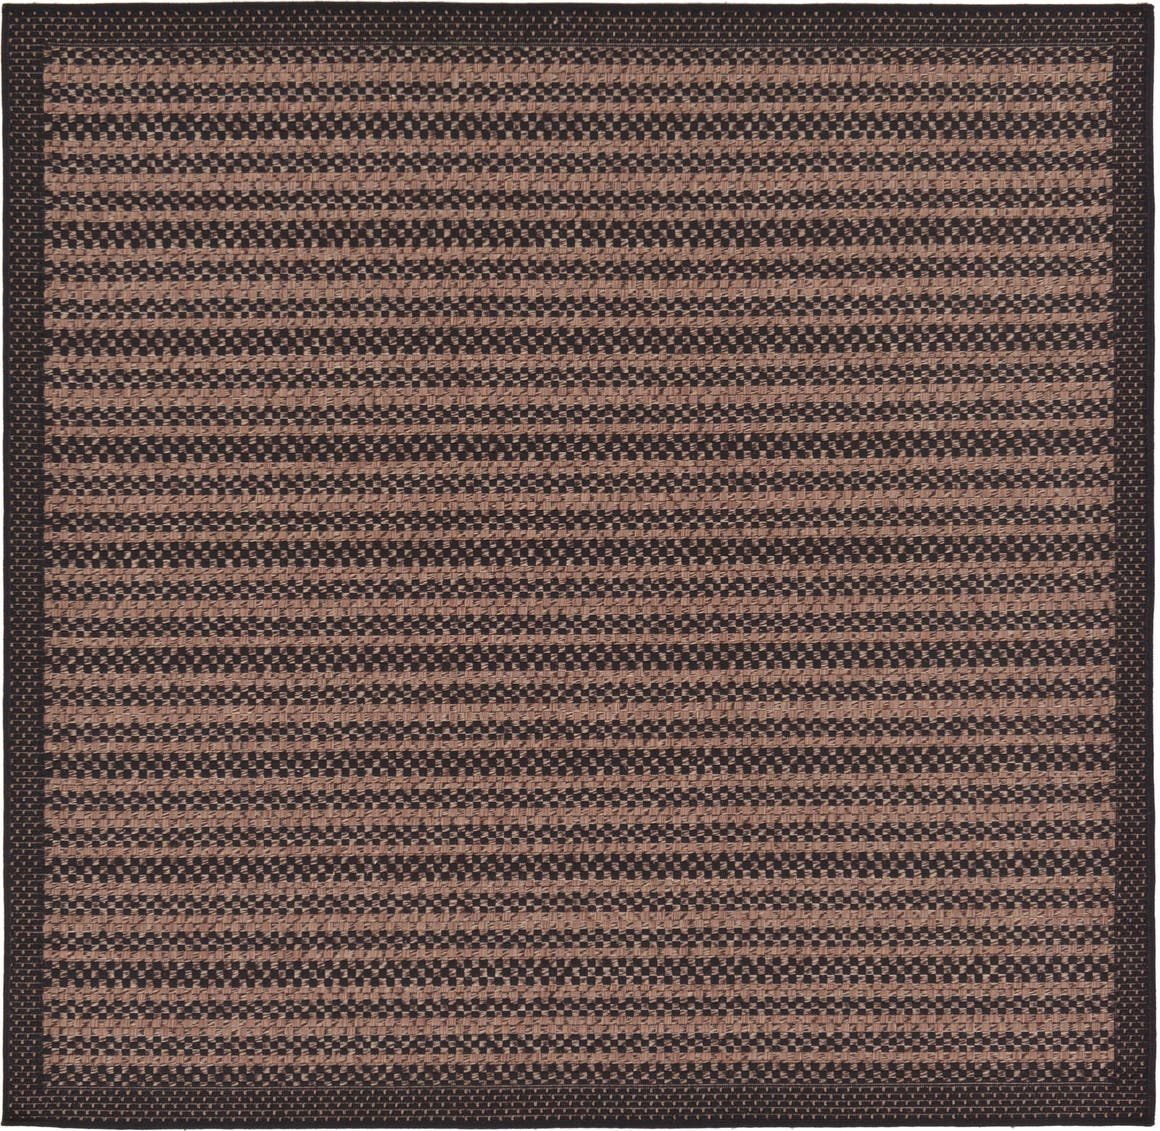 6' x 6' Outdoor Border Square Rug main image